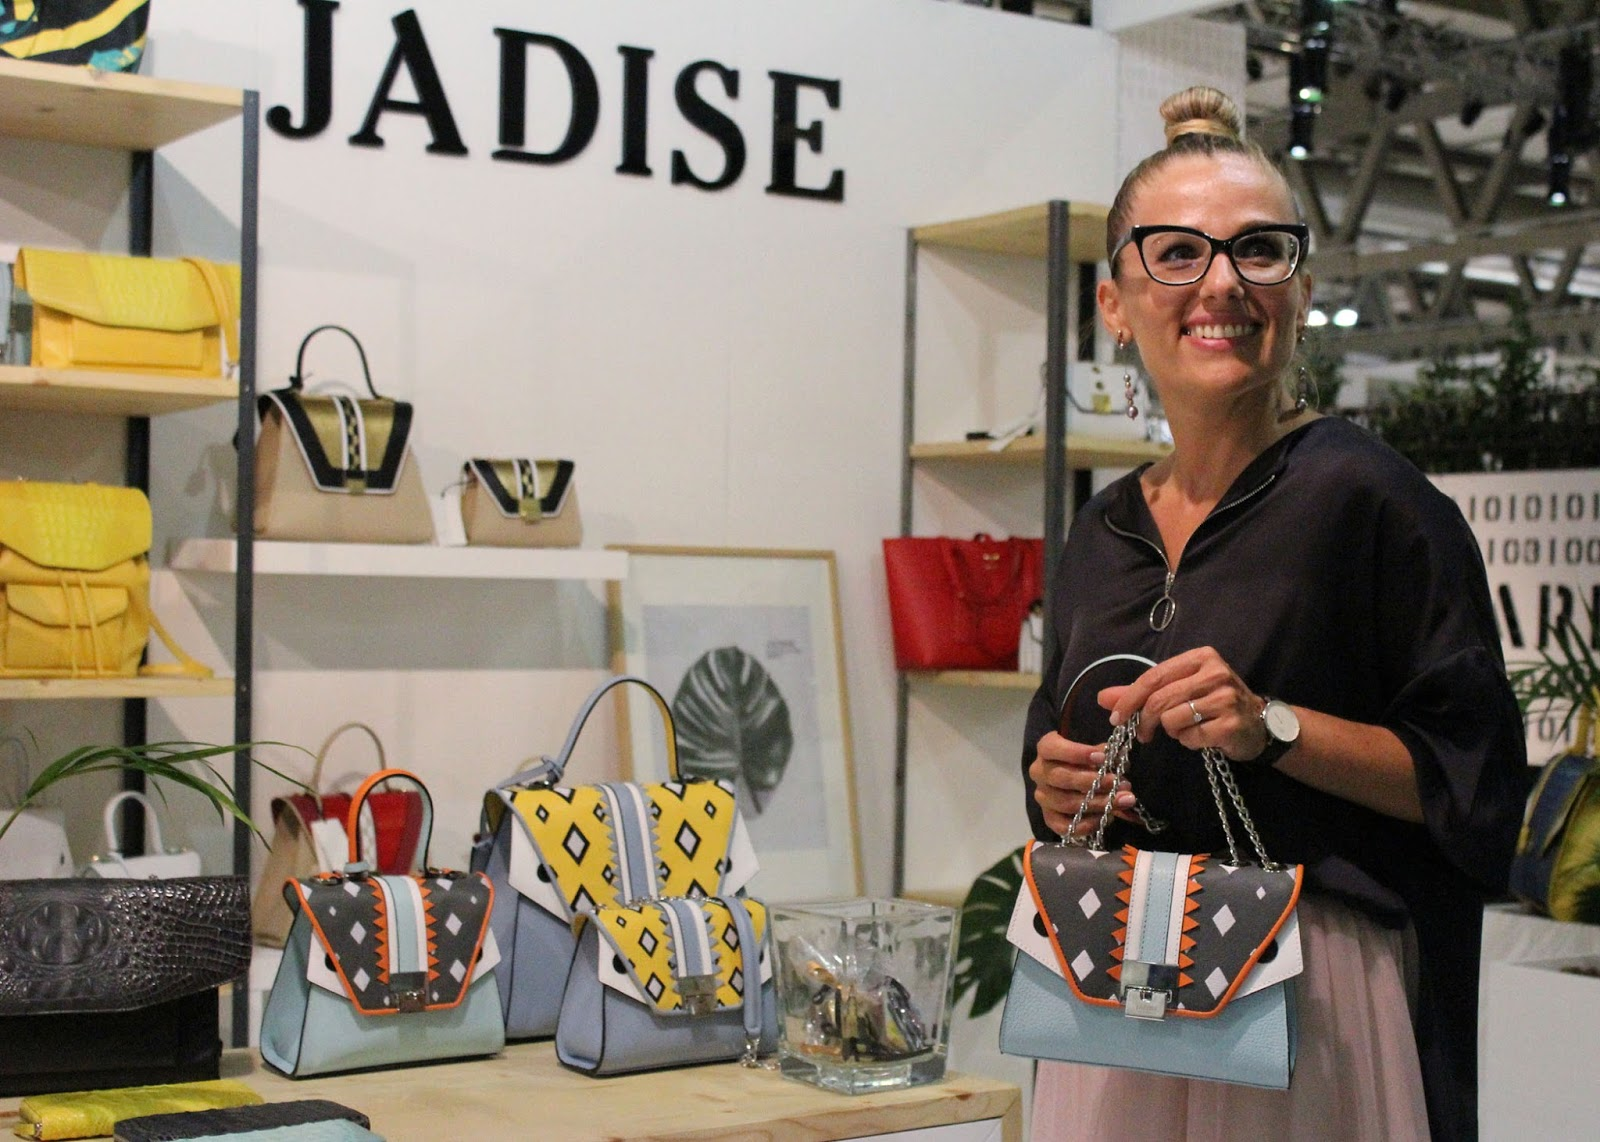 Eniwhere Fashion - Jadise bag - Micam